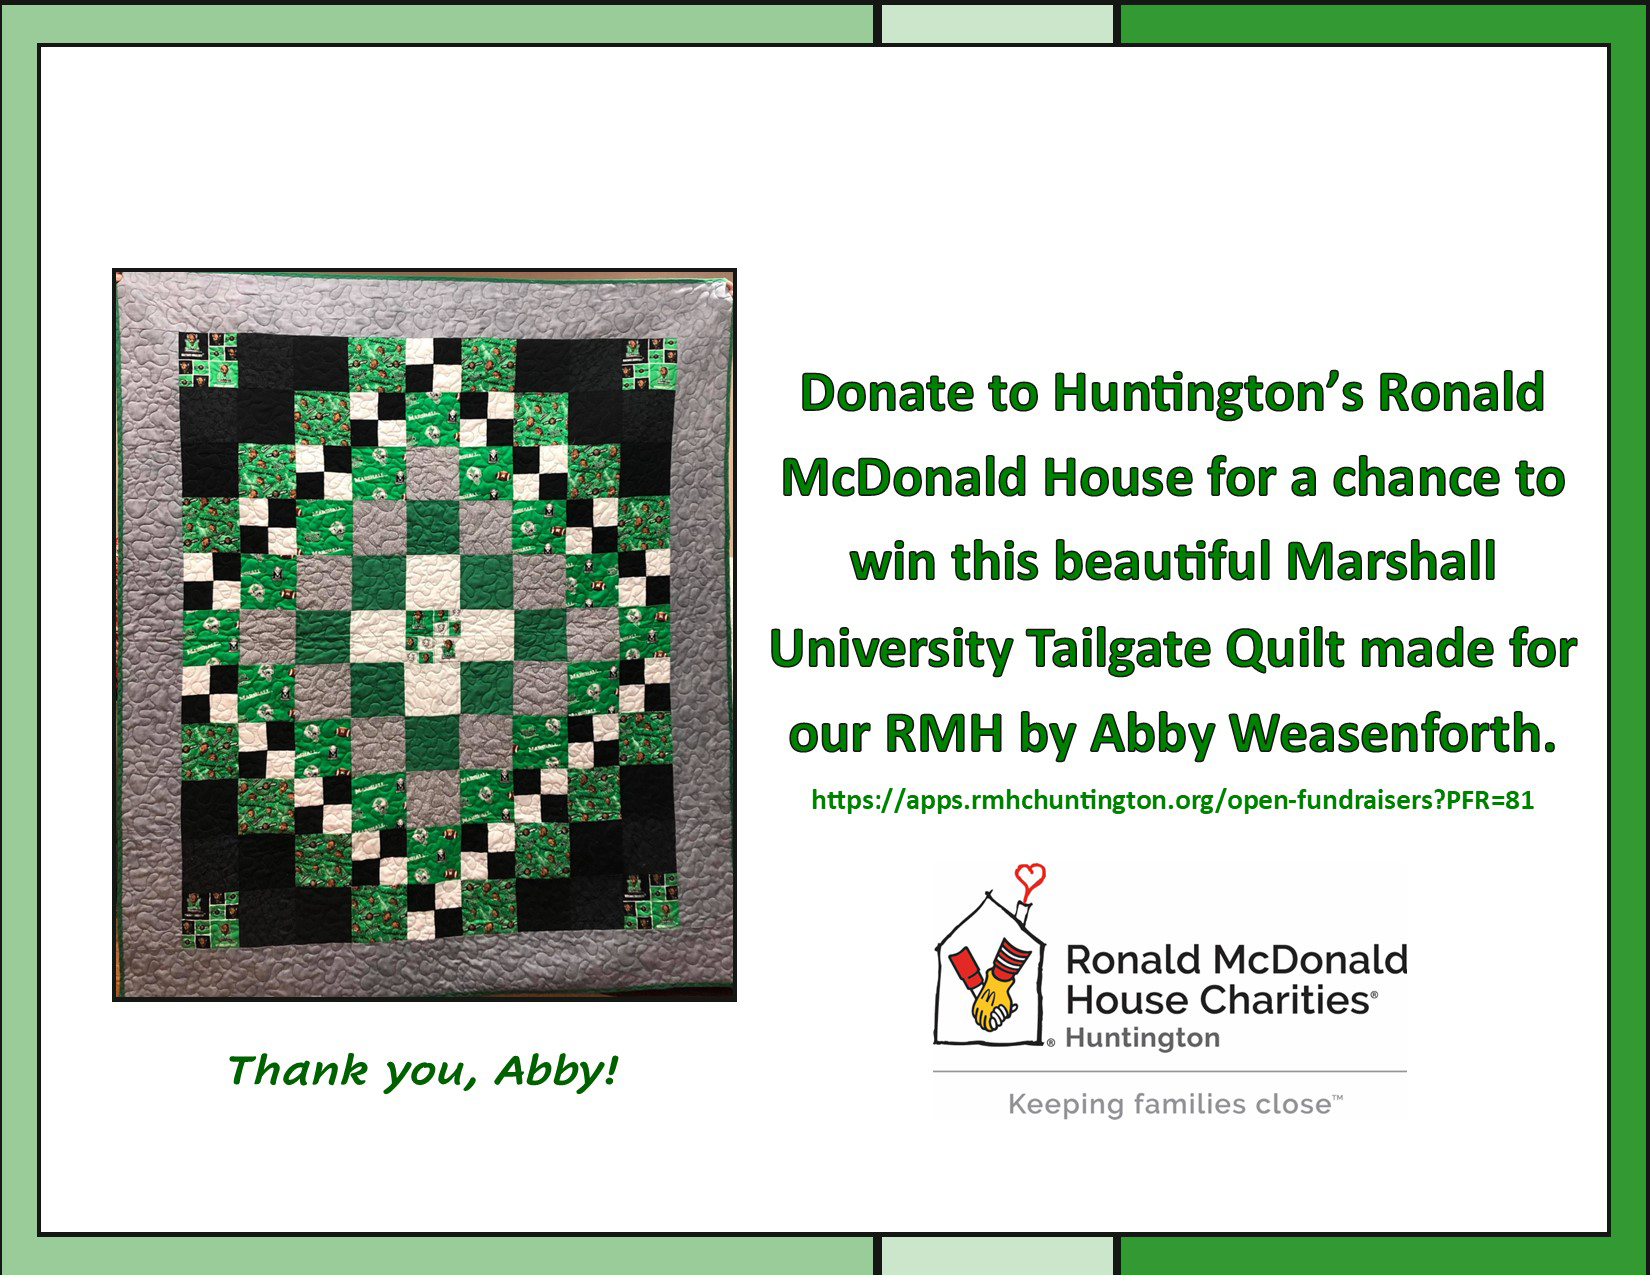 Donate to Huntington's Ronald McDonald House for a chance to win this beautiful Marshall University Tailgate Quilt made for our RMH by Abby Weasenforth.